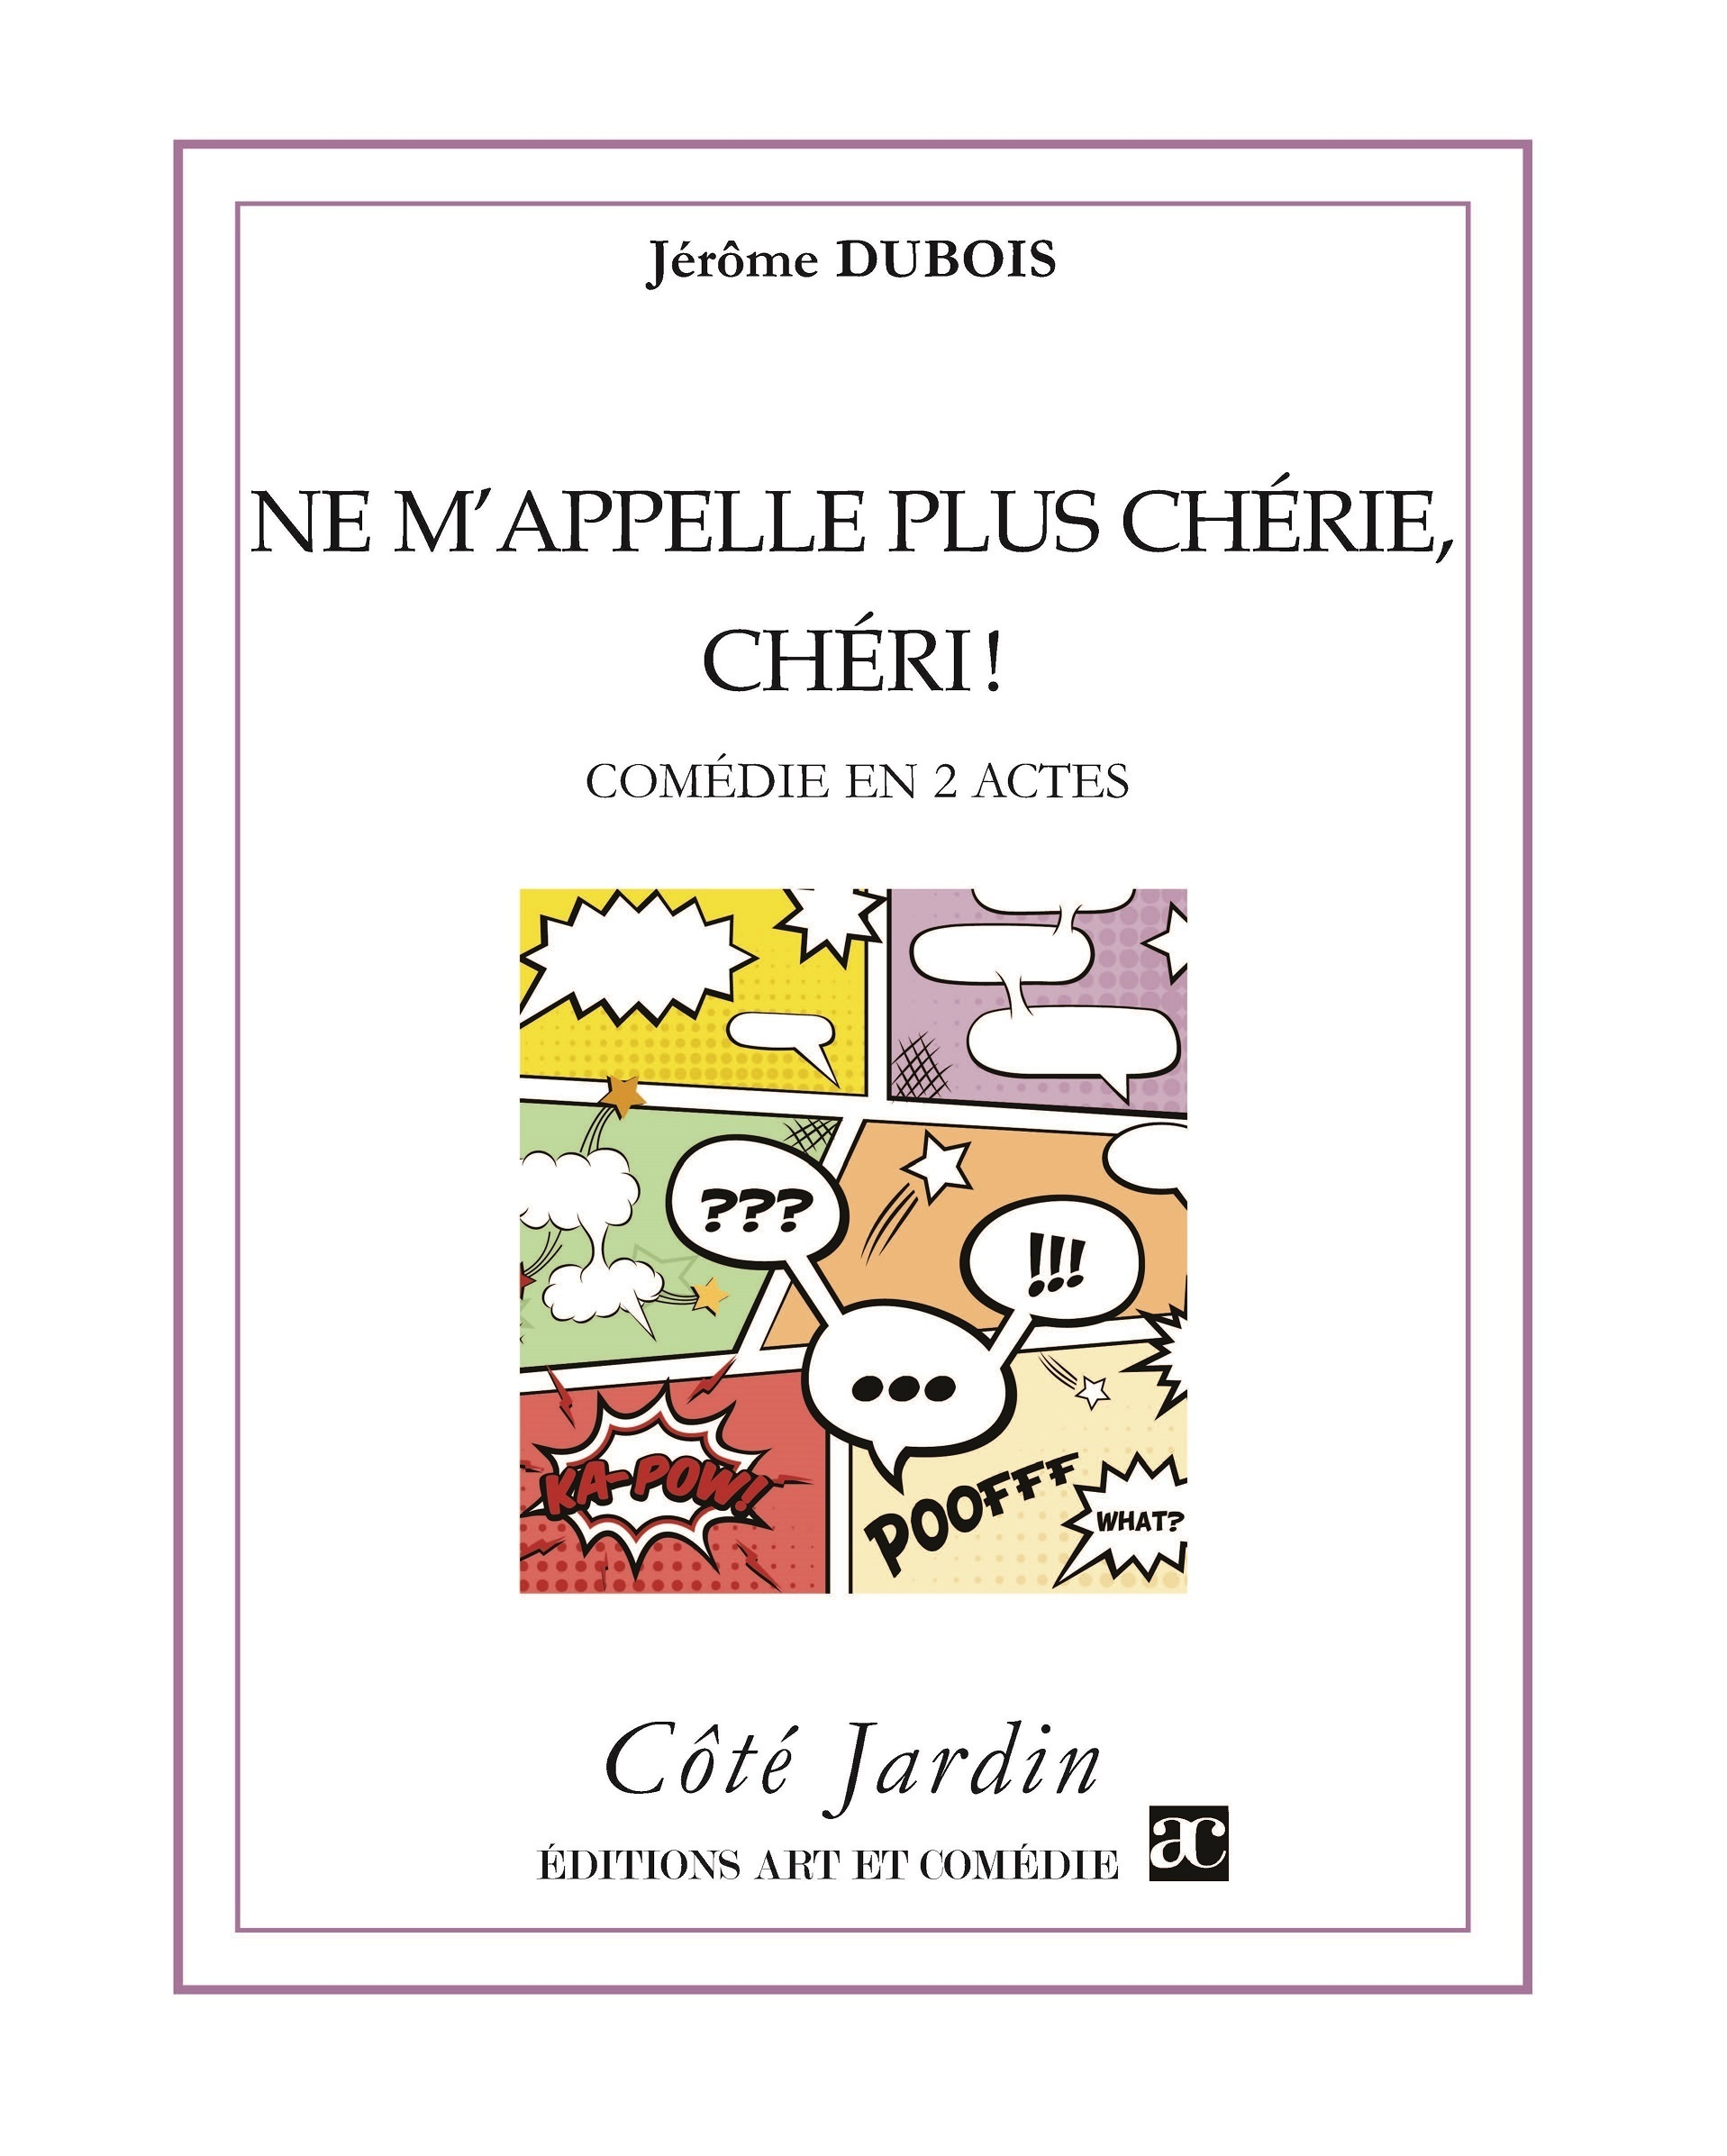 NE M'APPELLE PLUS CHERIE, CHERI REED